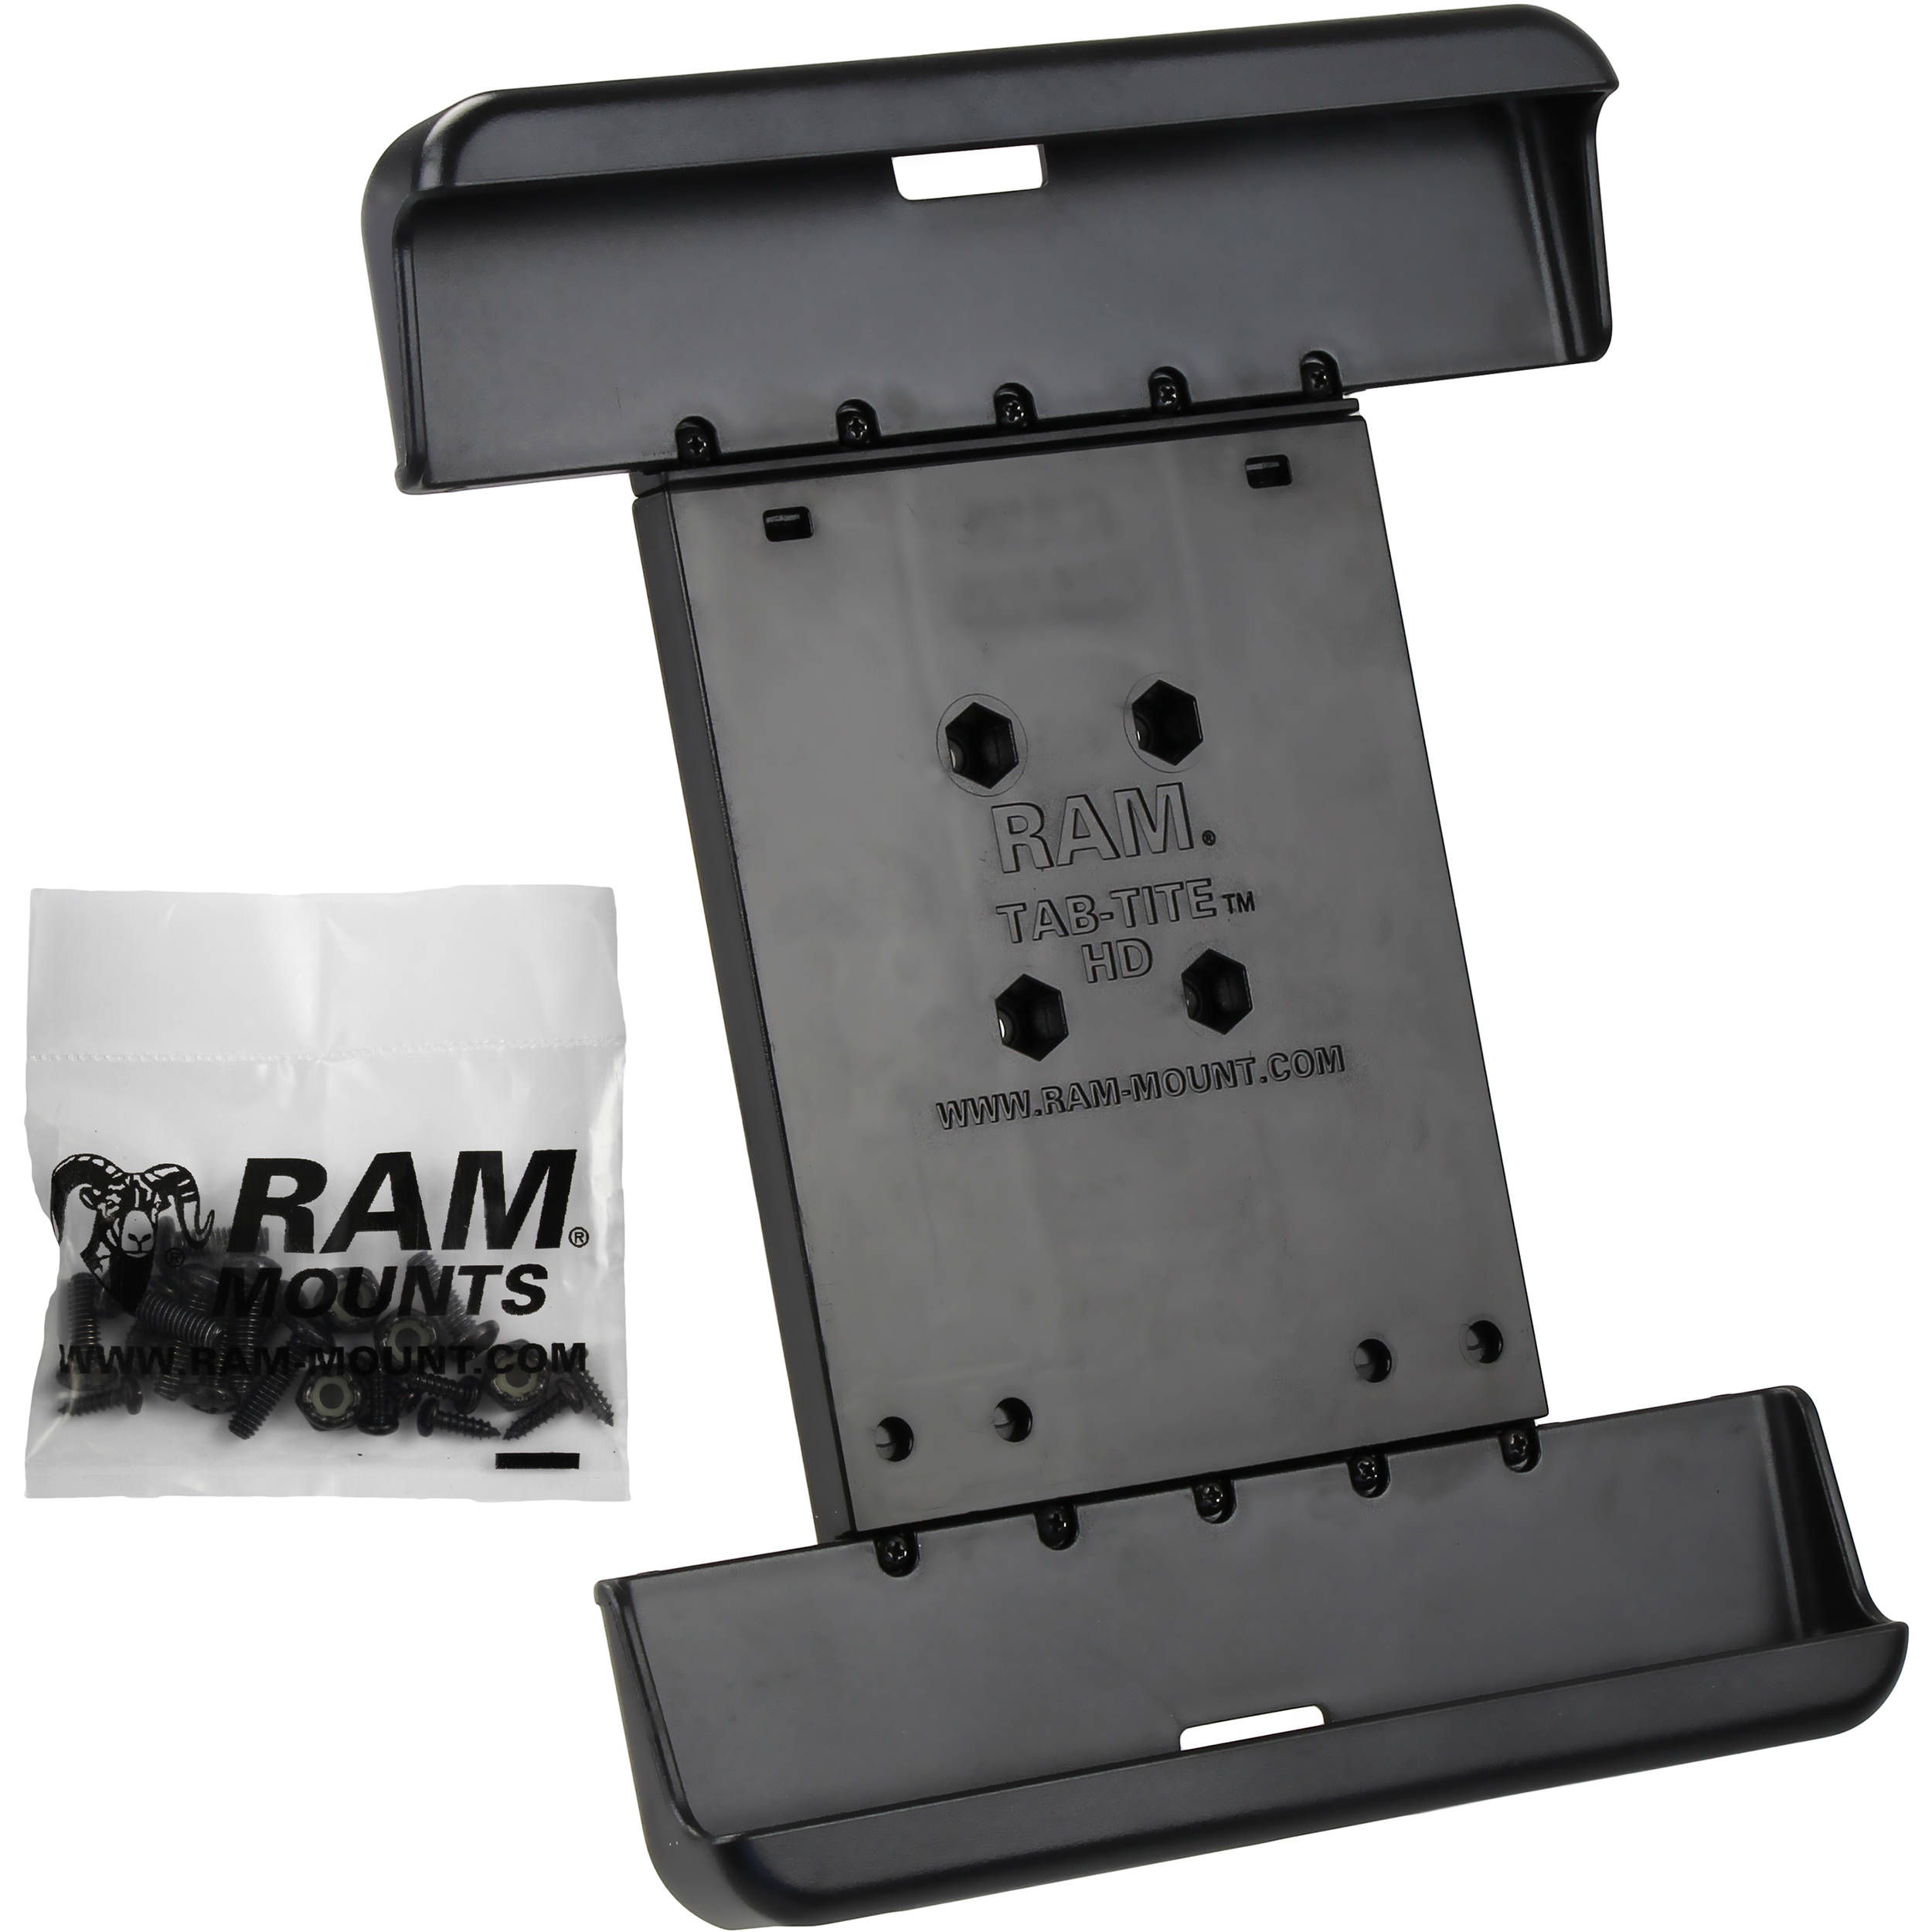 RAM MOUNTS Tab-Tite Cradle for Select 10